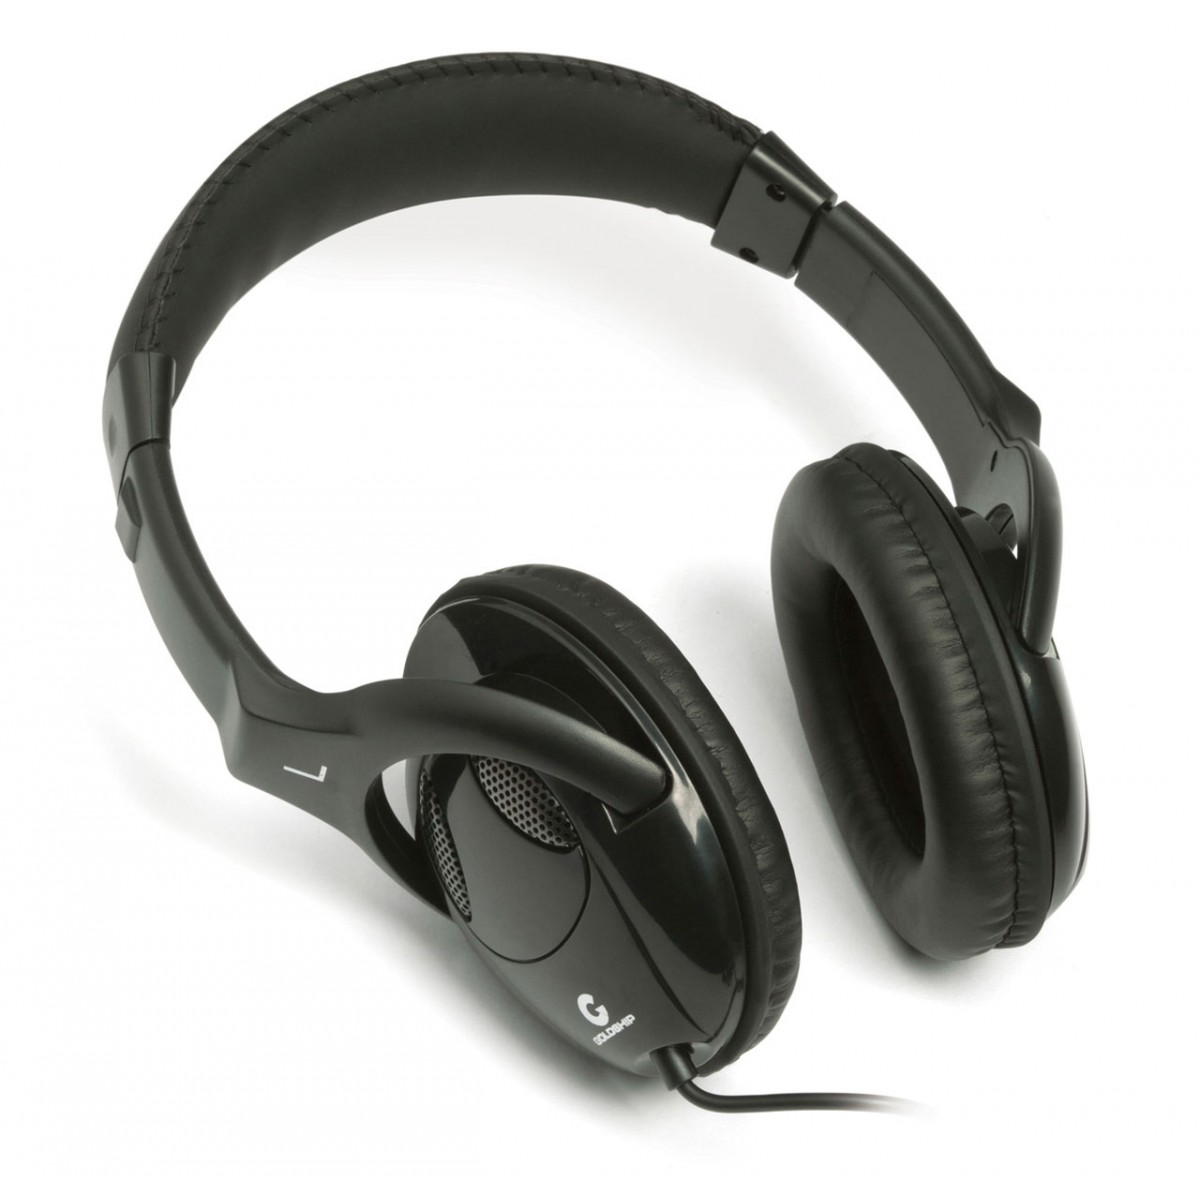 Headphone quality 1751 - Leadership